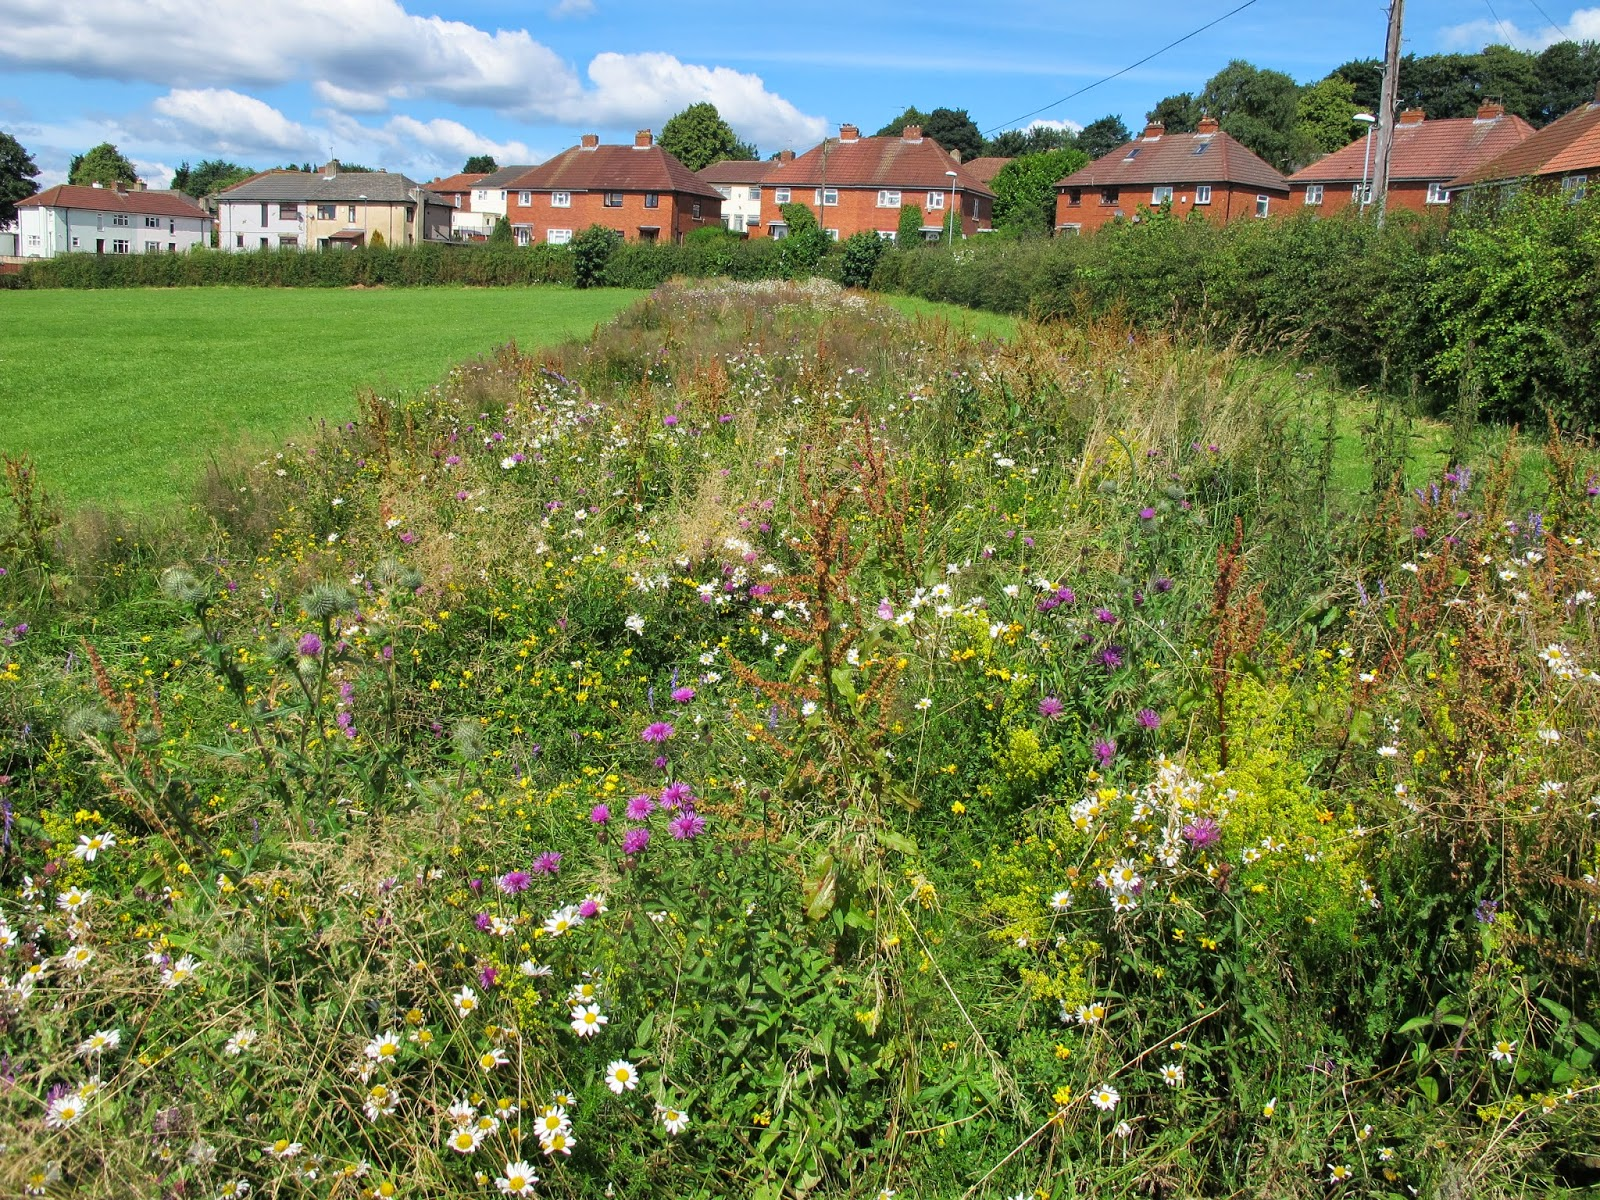 Residents in urban settlements can play 'major role' in ensuring pollinators survive